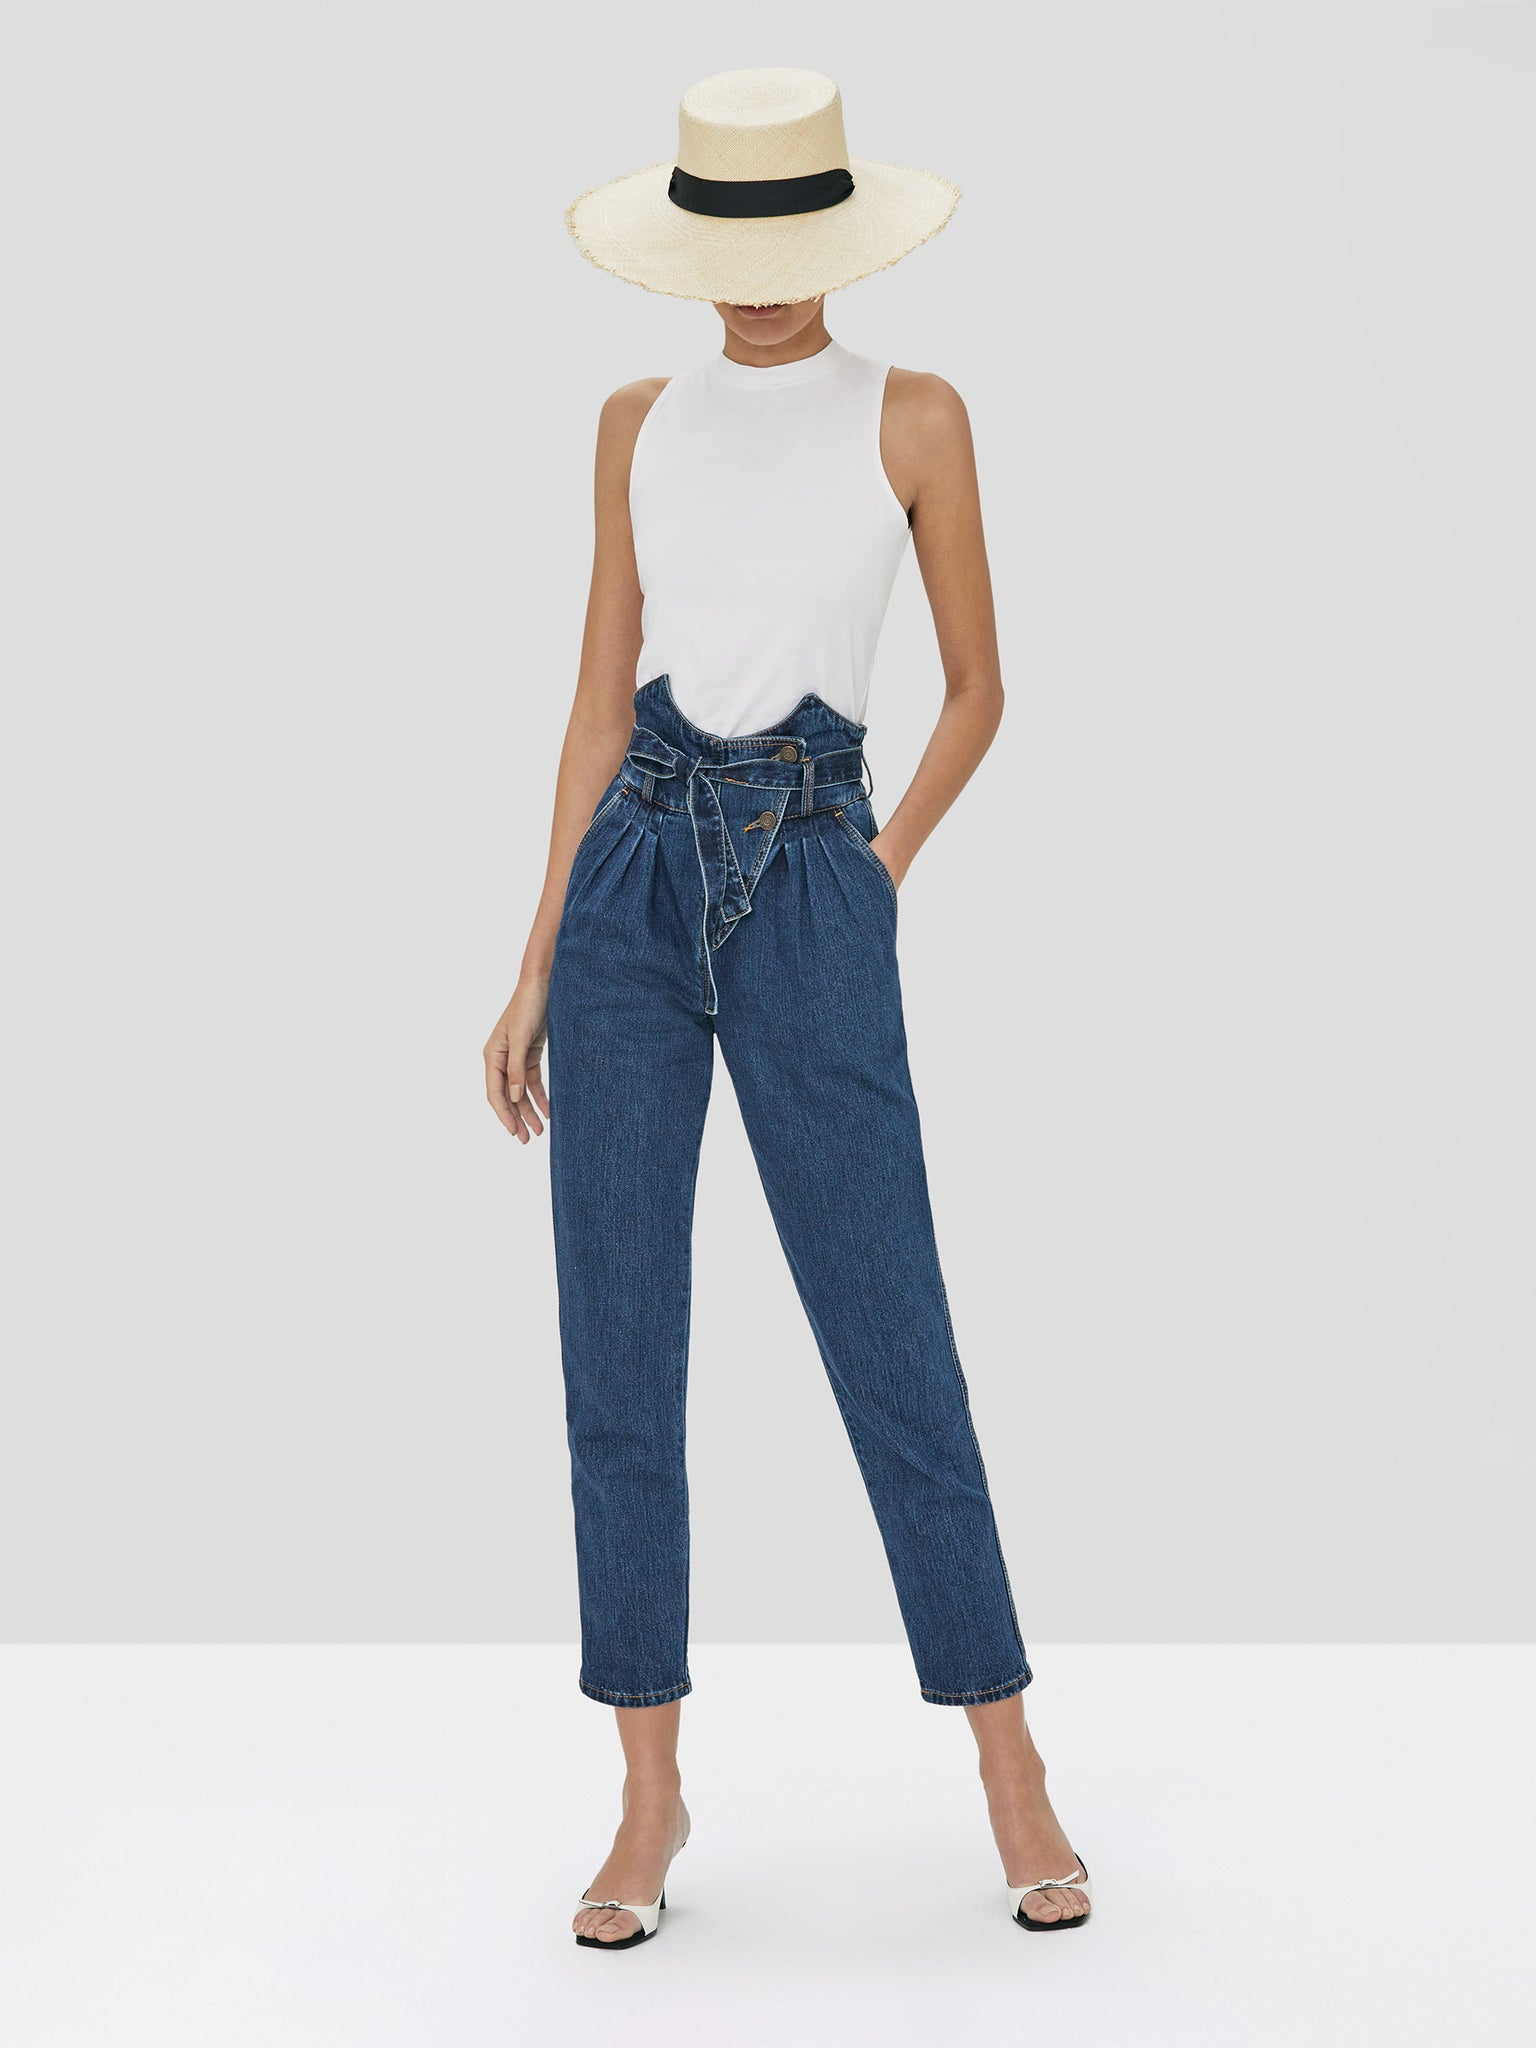 Alexis Teo Top White and Stannis Pant in Washed Denim Spring Summer 2020 Collection